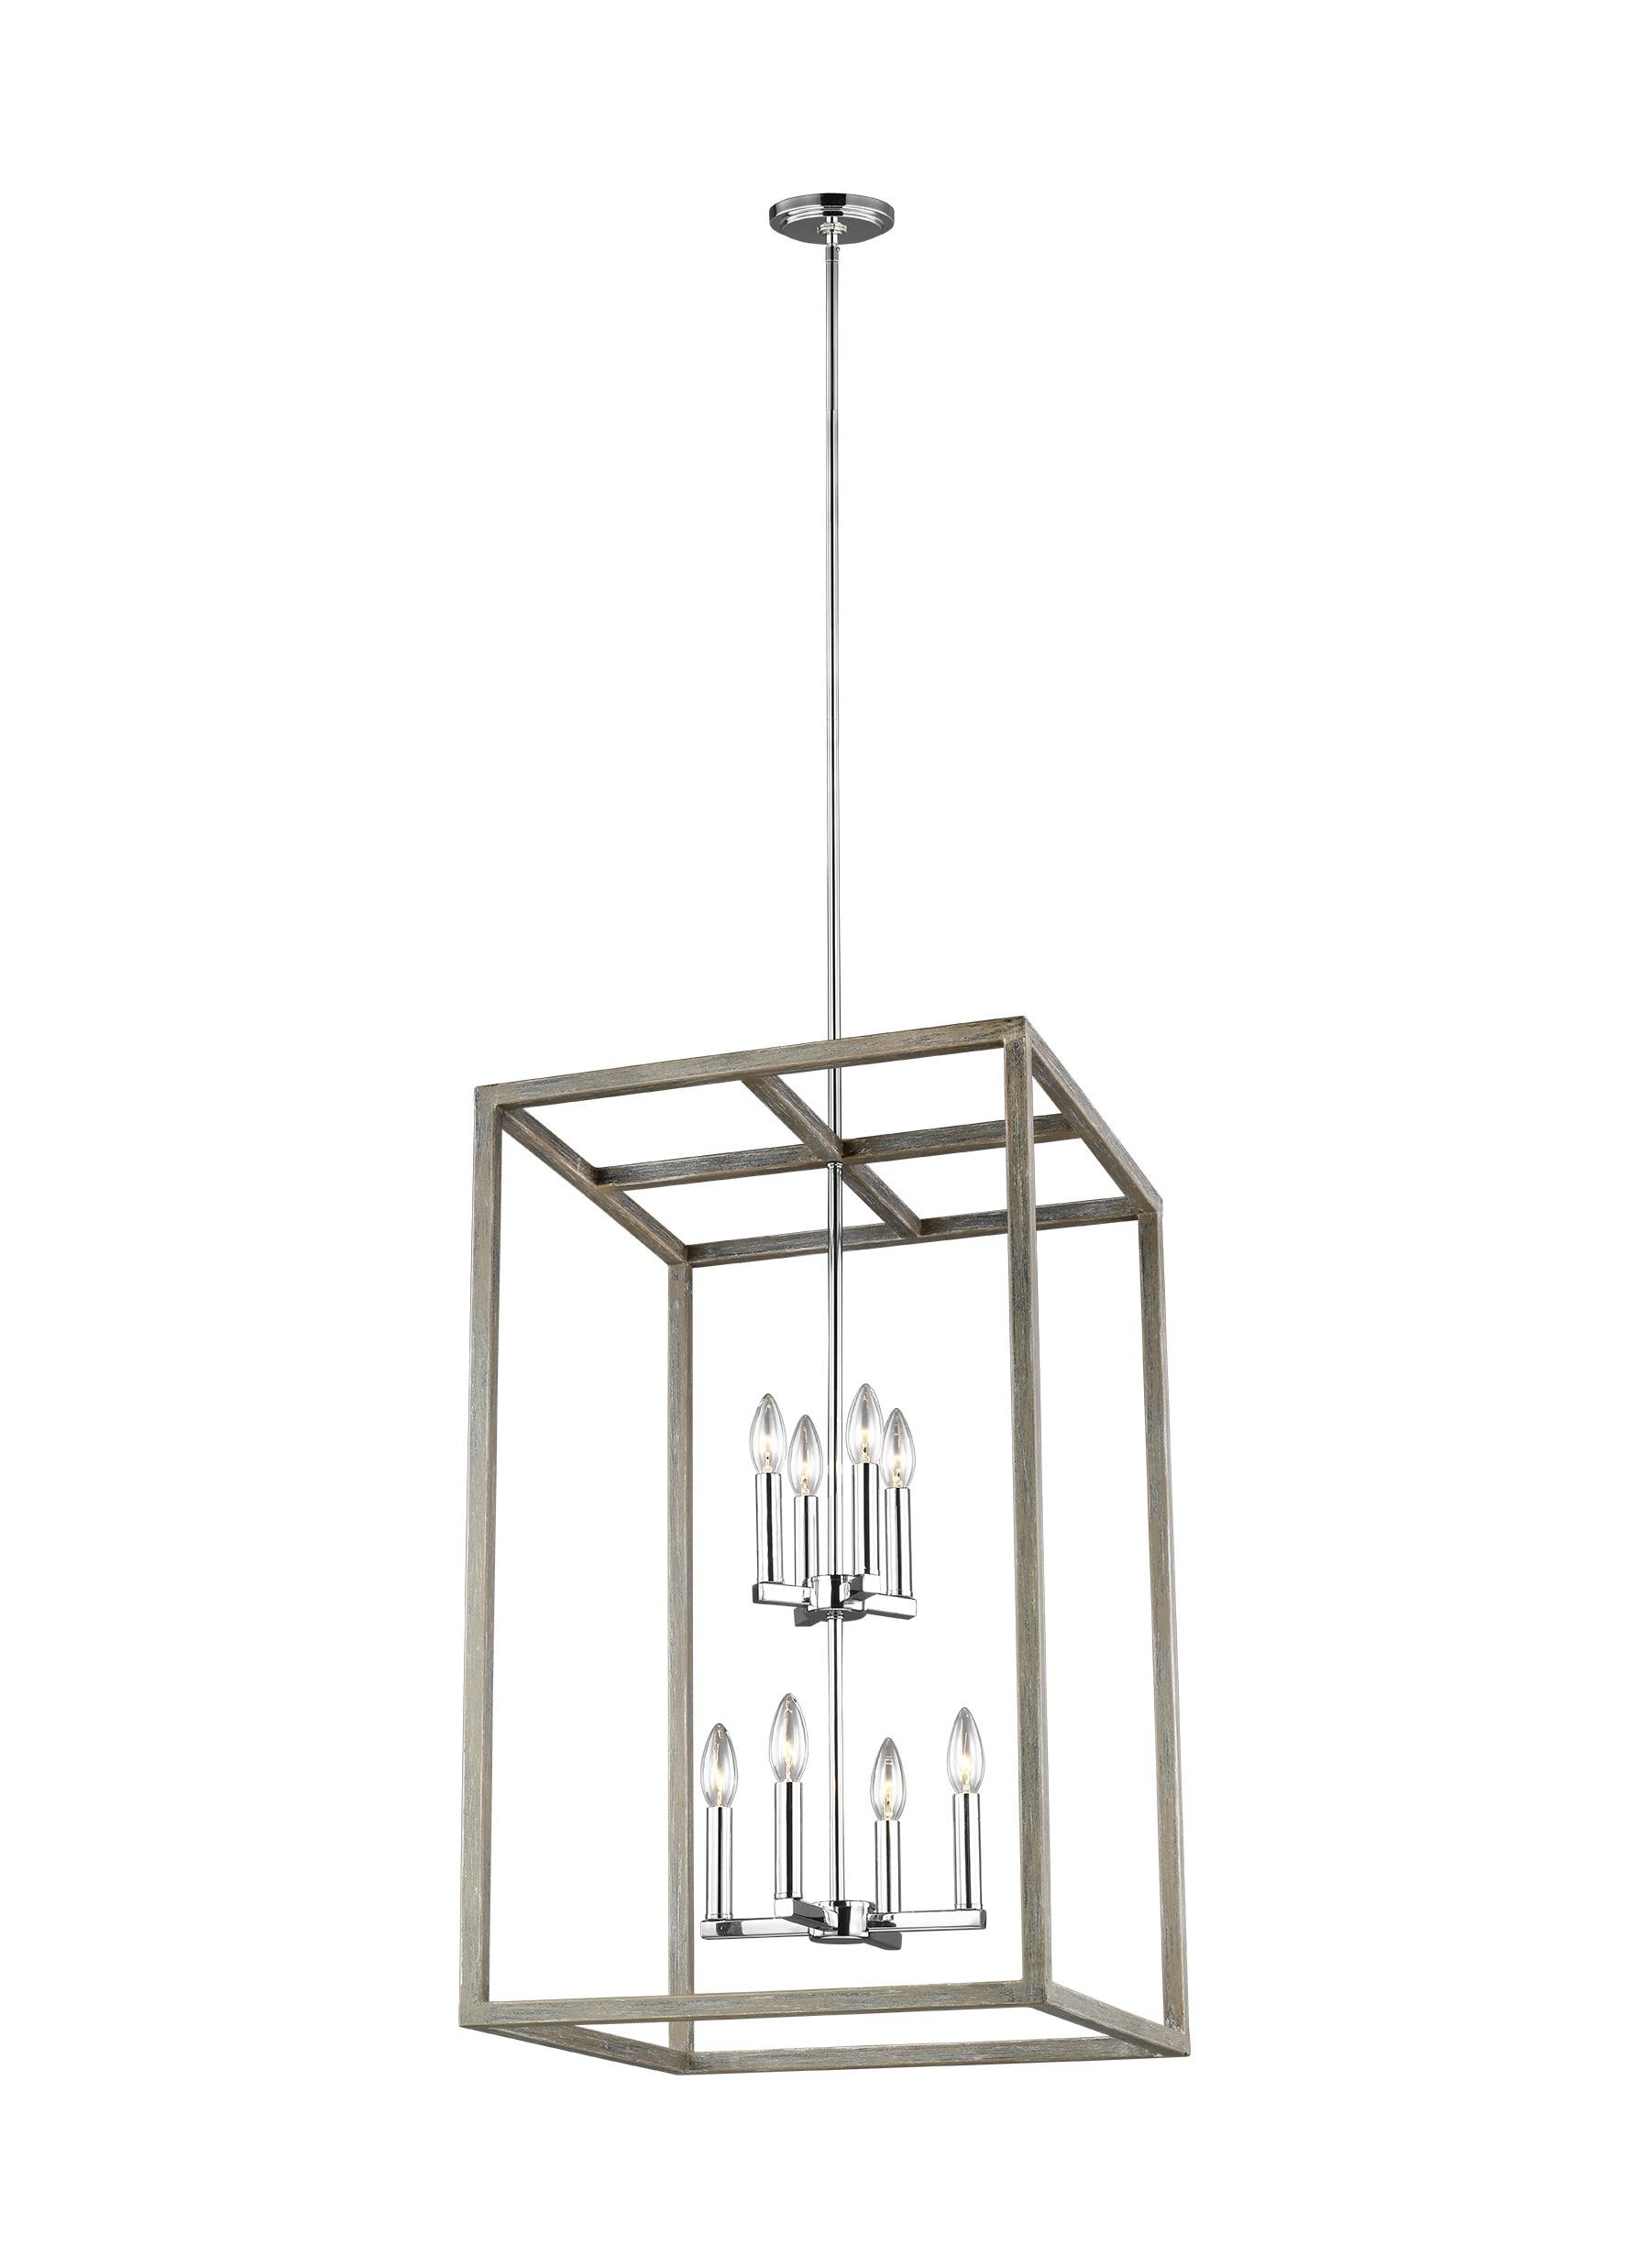 Kaydence 8-Light Single Rectangle Pendant with Odie 8-Light Kitchen Island Square / Rectangle Pendants (Image 12 of 30)